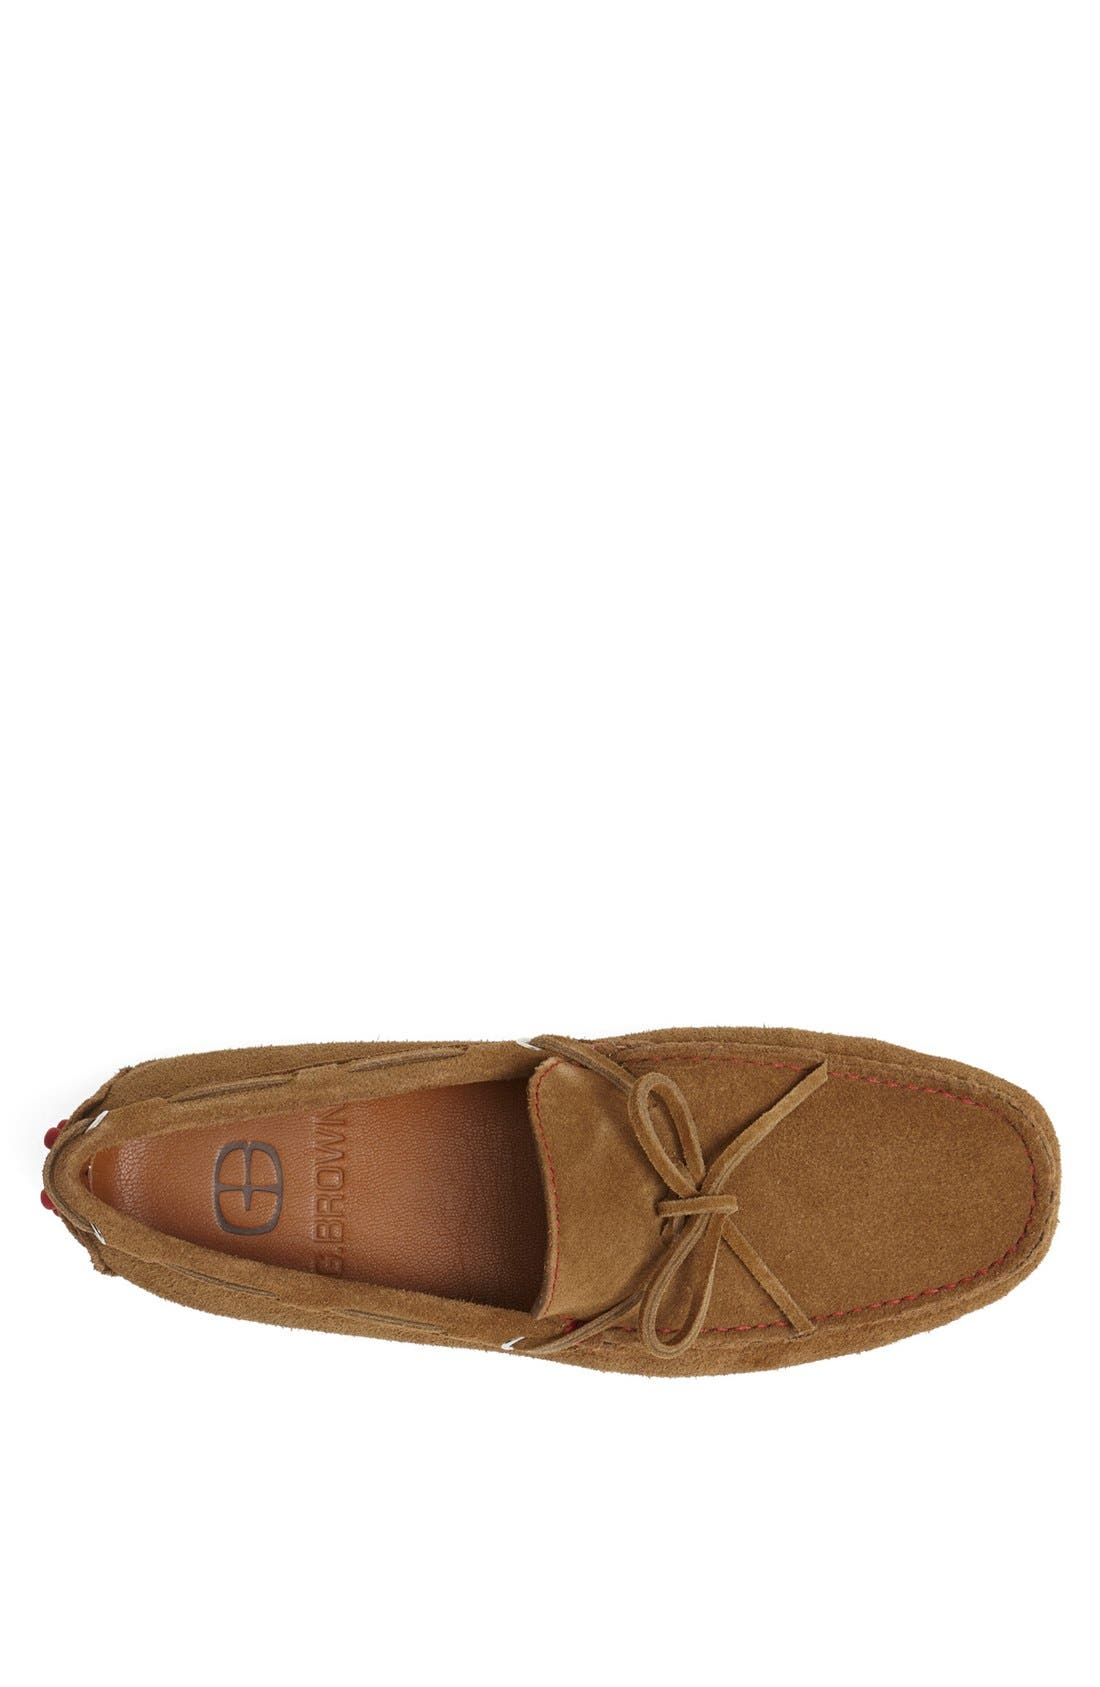 'Capri' Suede Driving Shoe,                             Alternate thumbnail 3, color,                             Tobacco